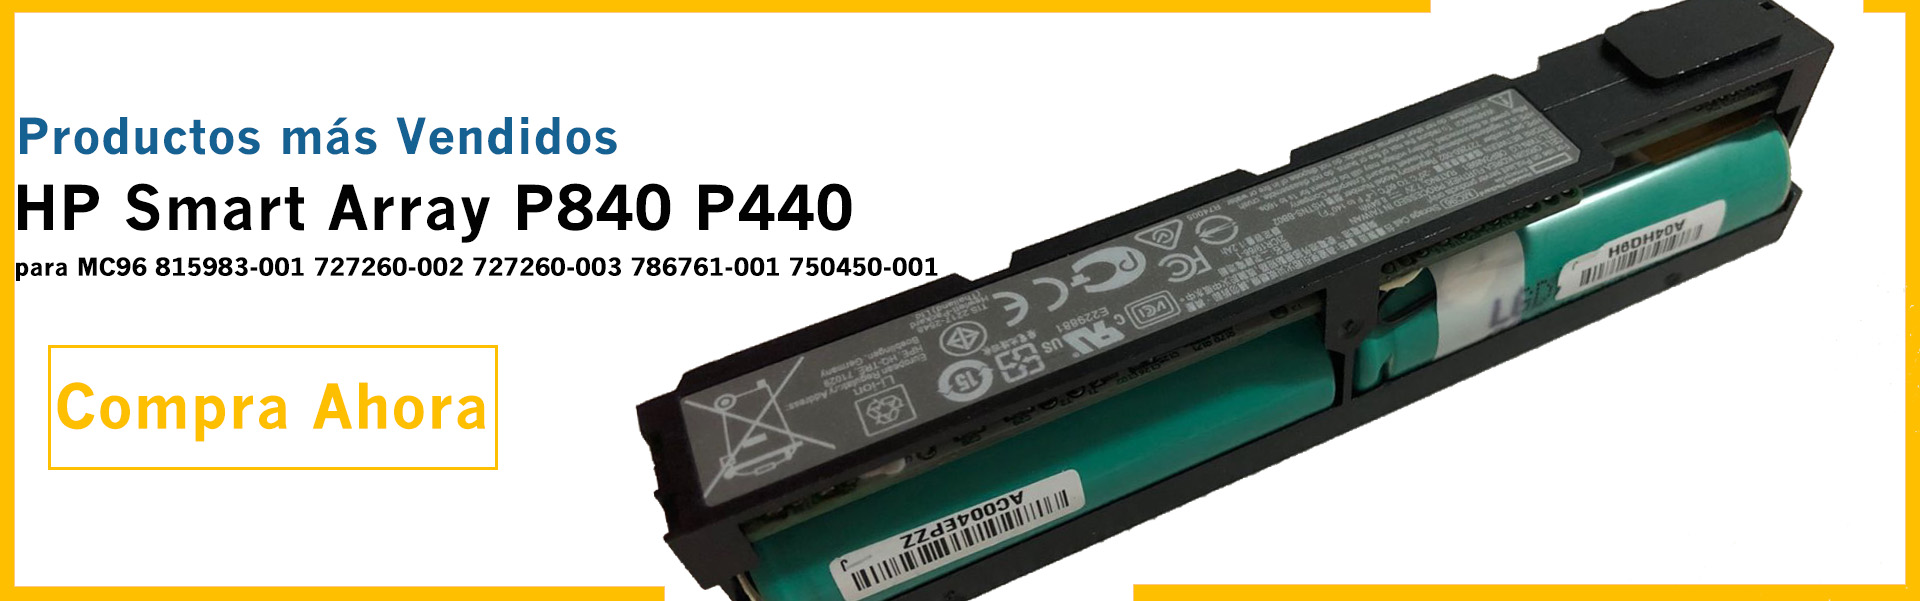 MC968 para HP Smart Array P840 P440